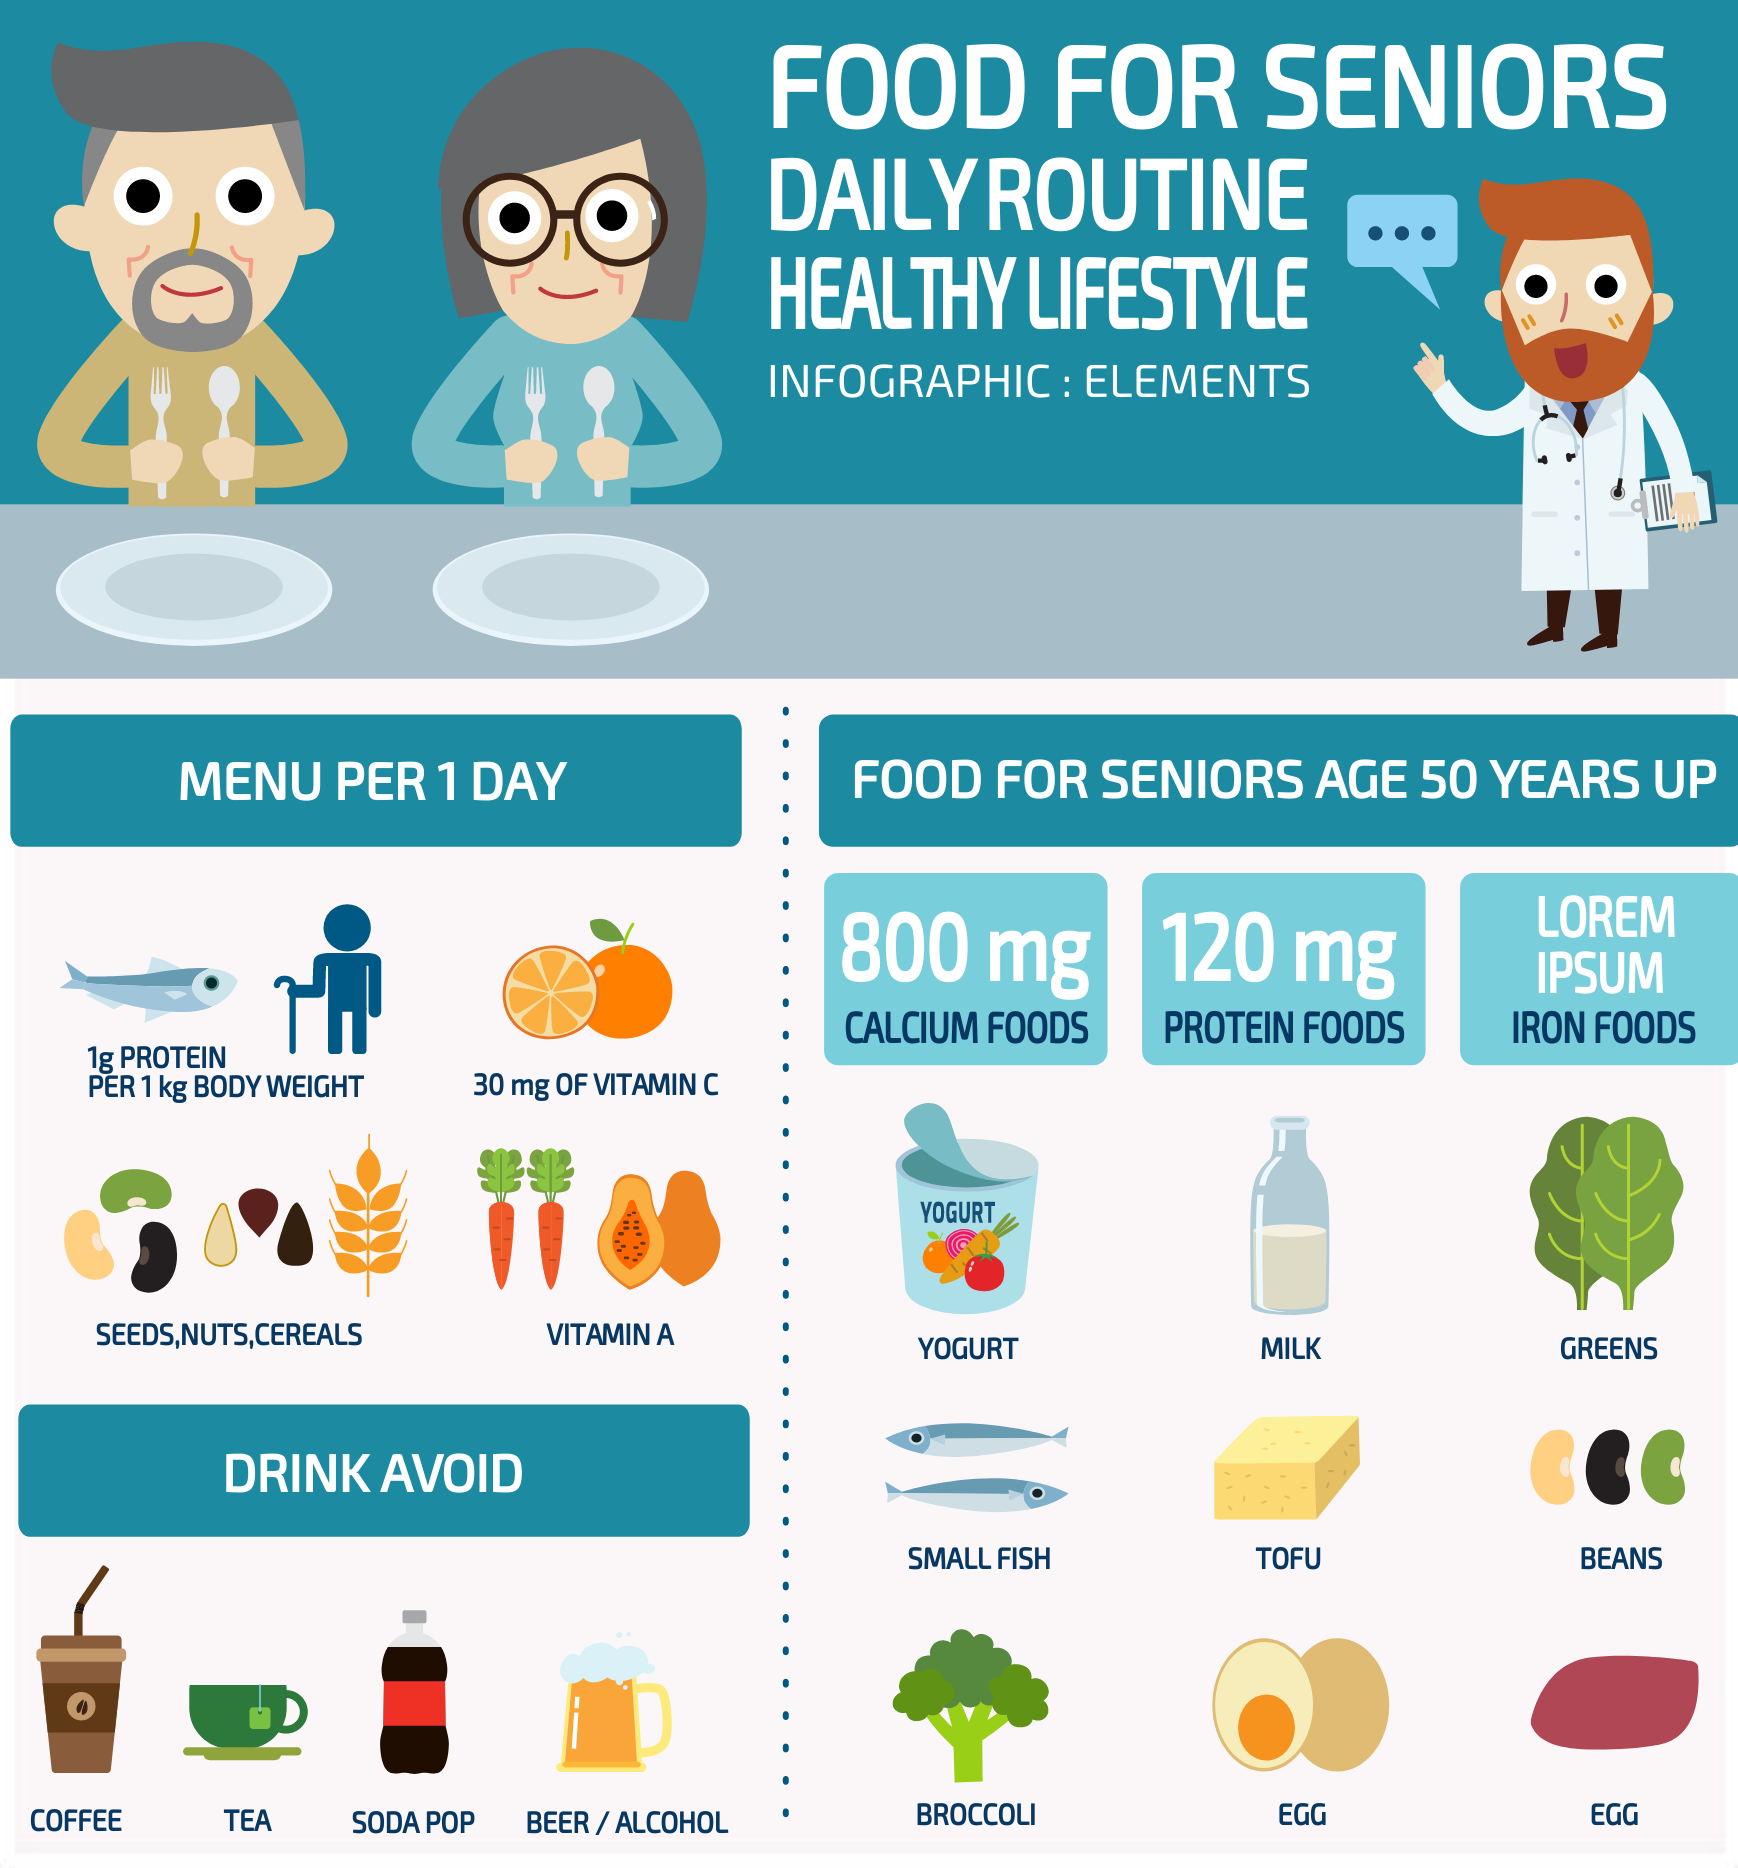 An infographic about healthy eating for seniors.